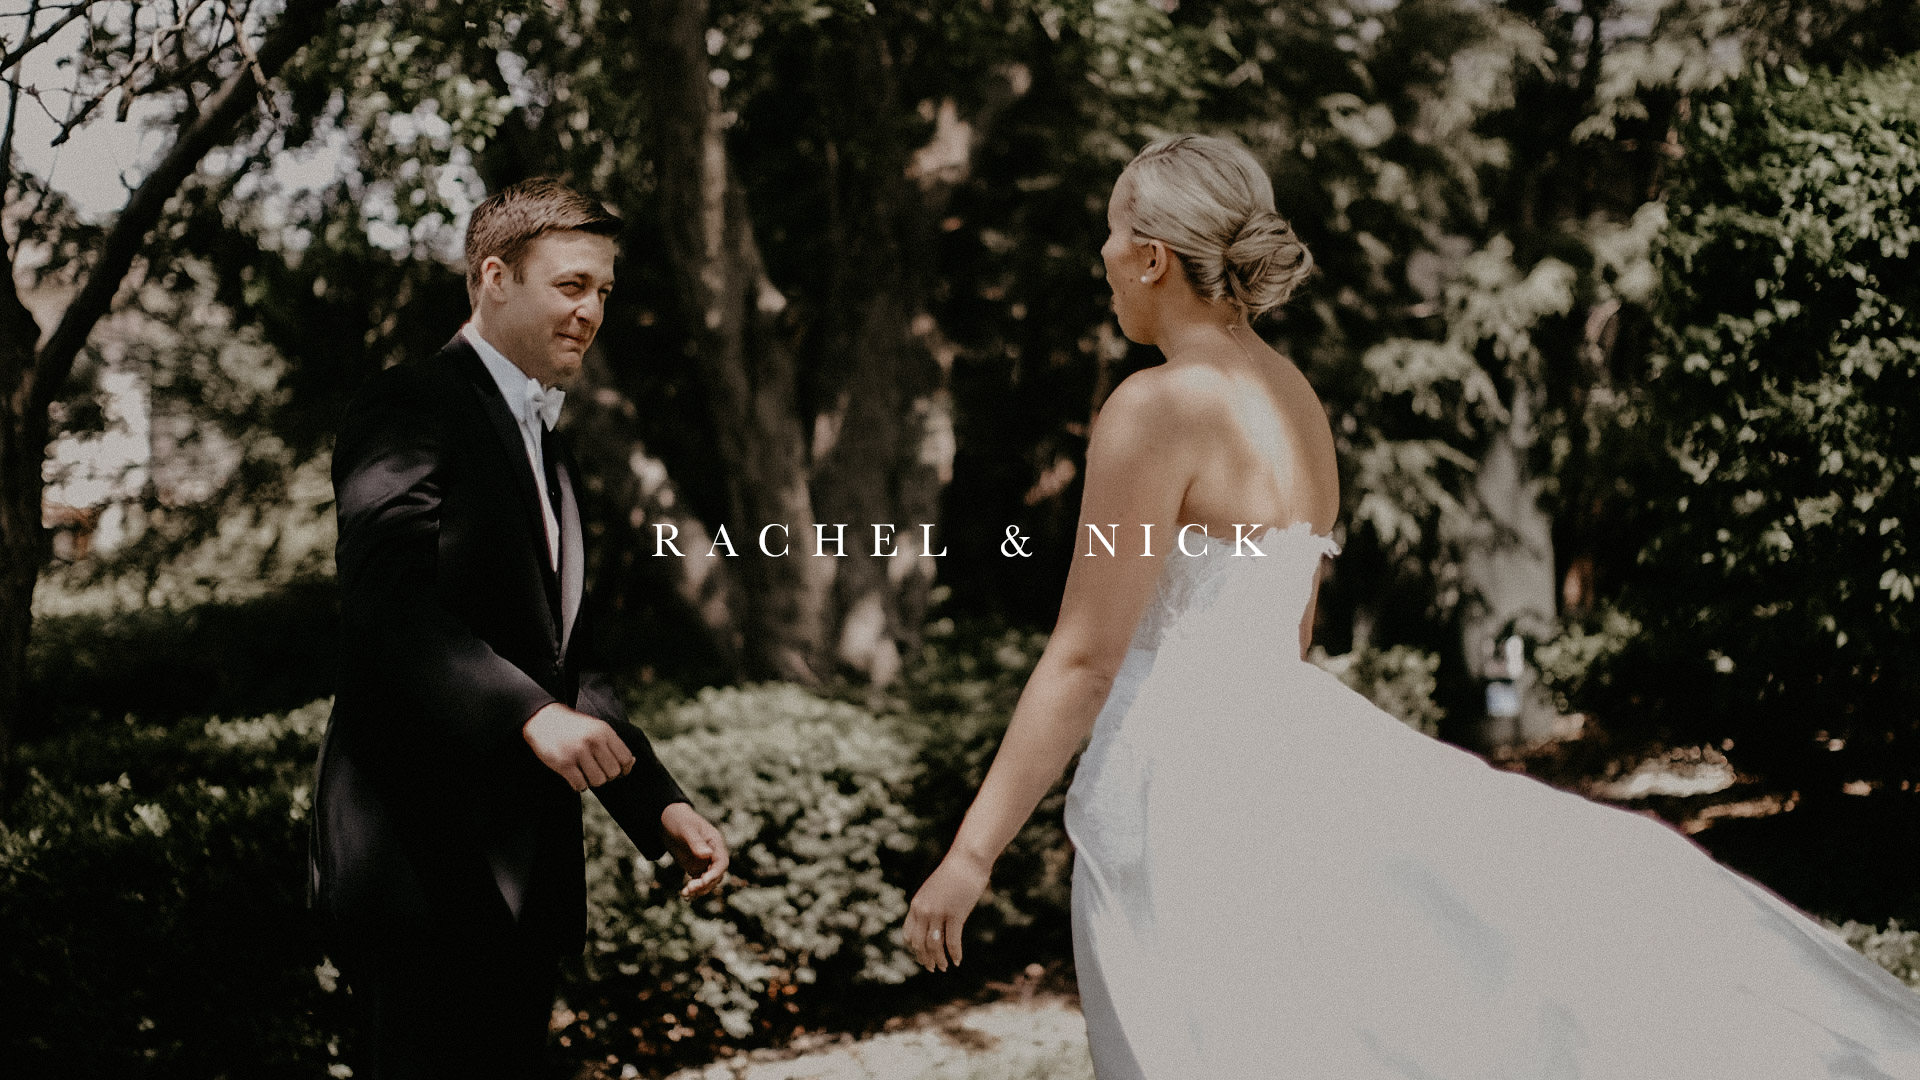 Rachel + Nick | Kansas City, Missouri | The Carriage Club